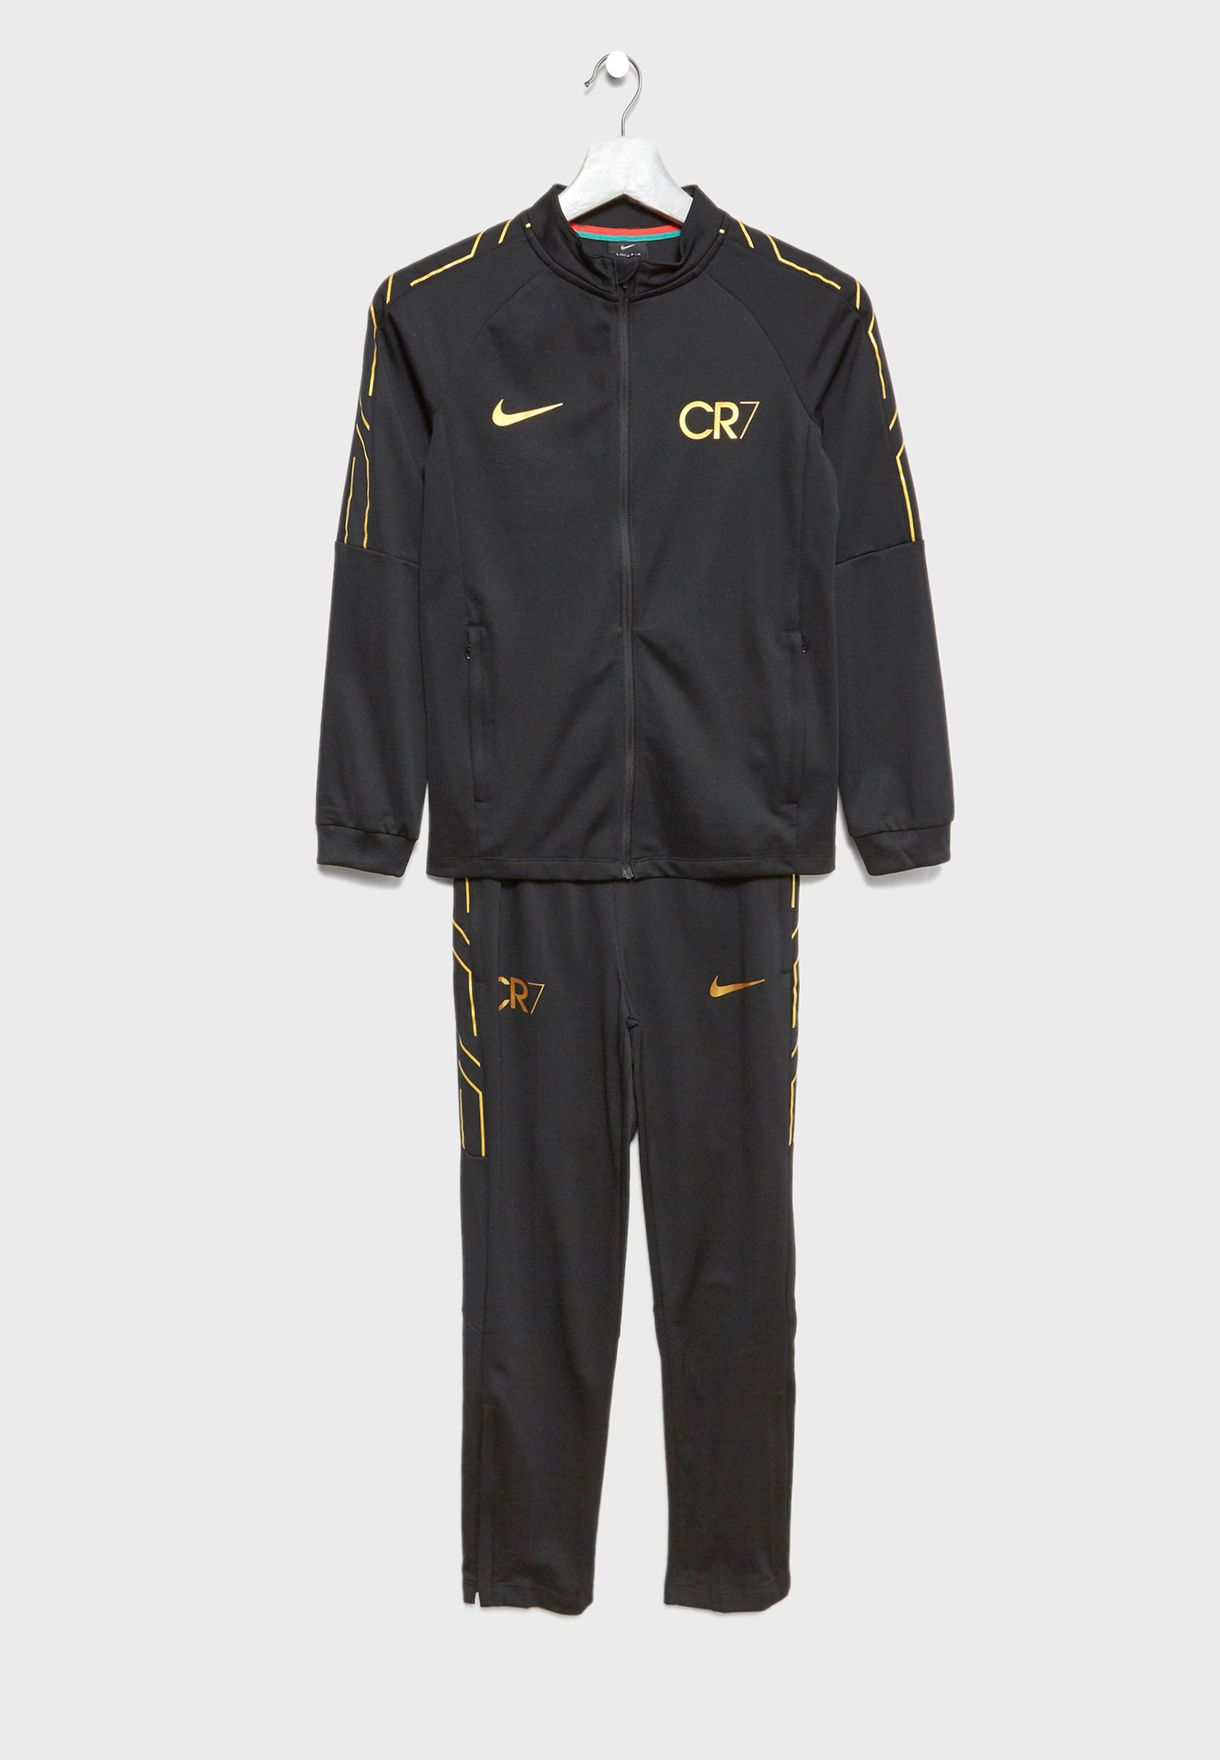 3e419fcae46 Shop Nike black Youth CR7 Dri-FIT Academy Tracksuit 894878-010 for ...